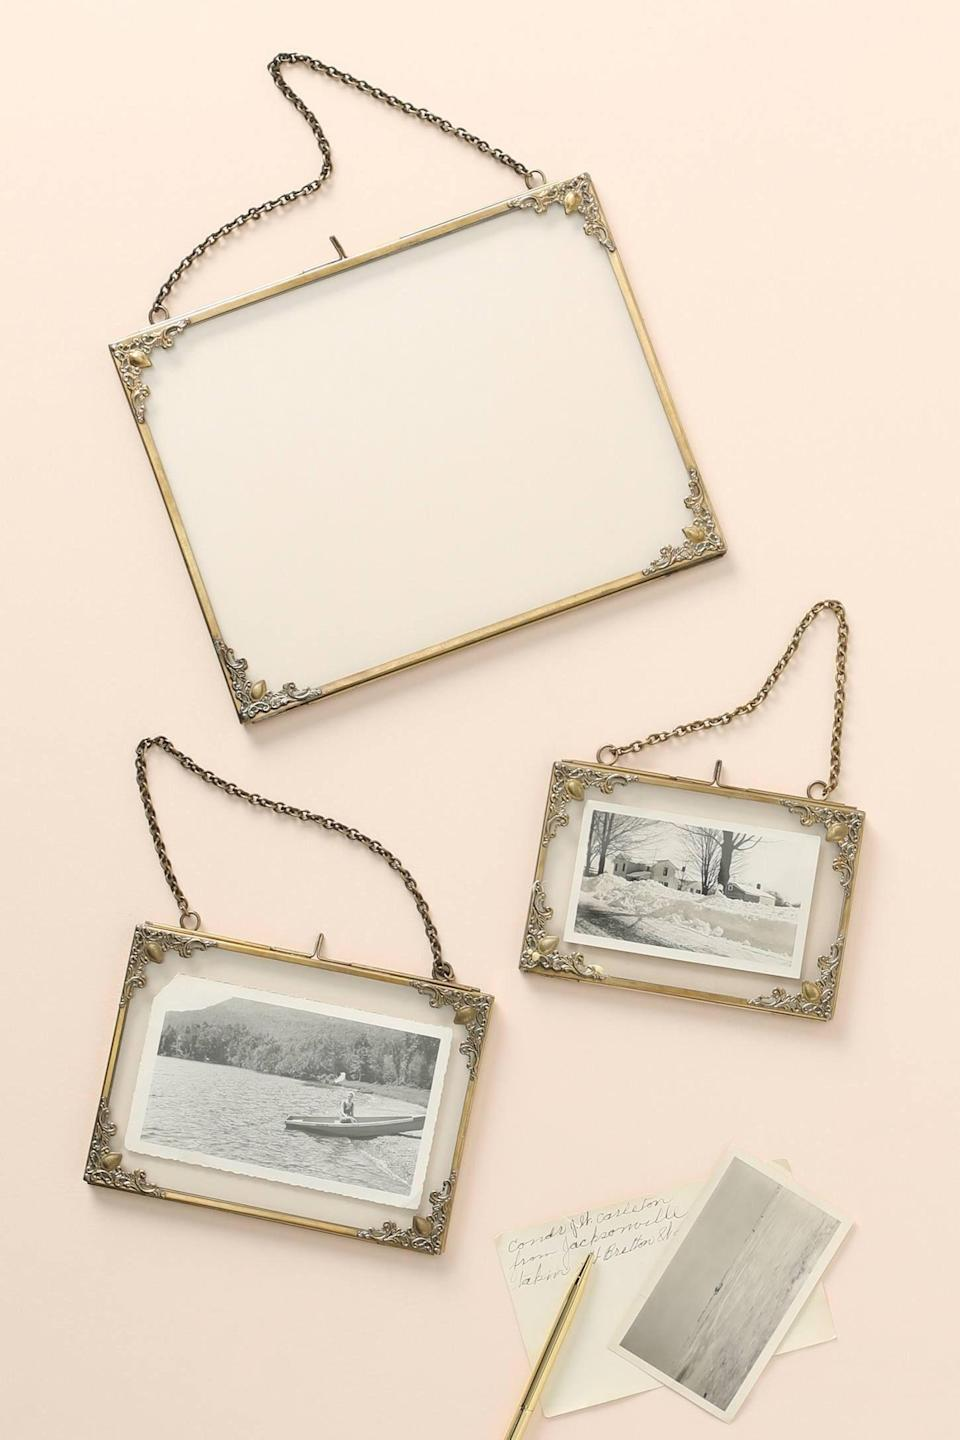 """<p><strong>Anthropologie</strong></p><p>anthropologie.com</p><p><strong>$22.00</strong></p><p><a href=""""https://go.redirectingat.com?id=74968X1596630&url=https%3A%2F%2Fwww.anthropologie.com%2Fshop%2Folivia-frame2&sref=https%3A%2F%2Fwww.cosmopolitan.com%2Flifestyle%2Fg31710124%2Ftaurus-gift-guide%2F"""" rel=""""nofollow noopener"""" target=""""_blank"""" data-ylk=""""slk:SHOP NOW"""" class=""""link rapid-noclick-resp"""">SHOP NOW</a></p><p>Tauruses treasure memories with the people they love, so they'll be touched to receive an elegant frame with a picture of the two of you together.</p>"""